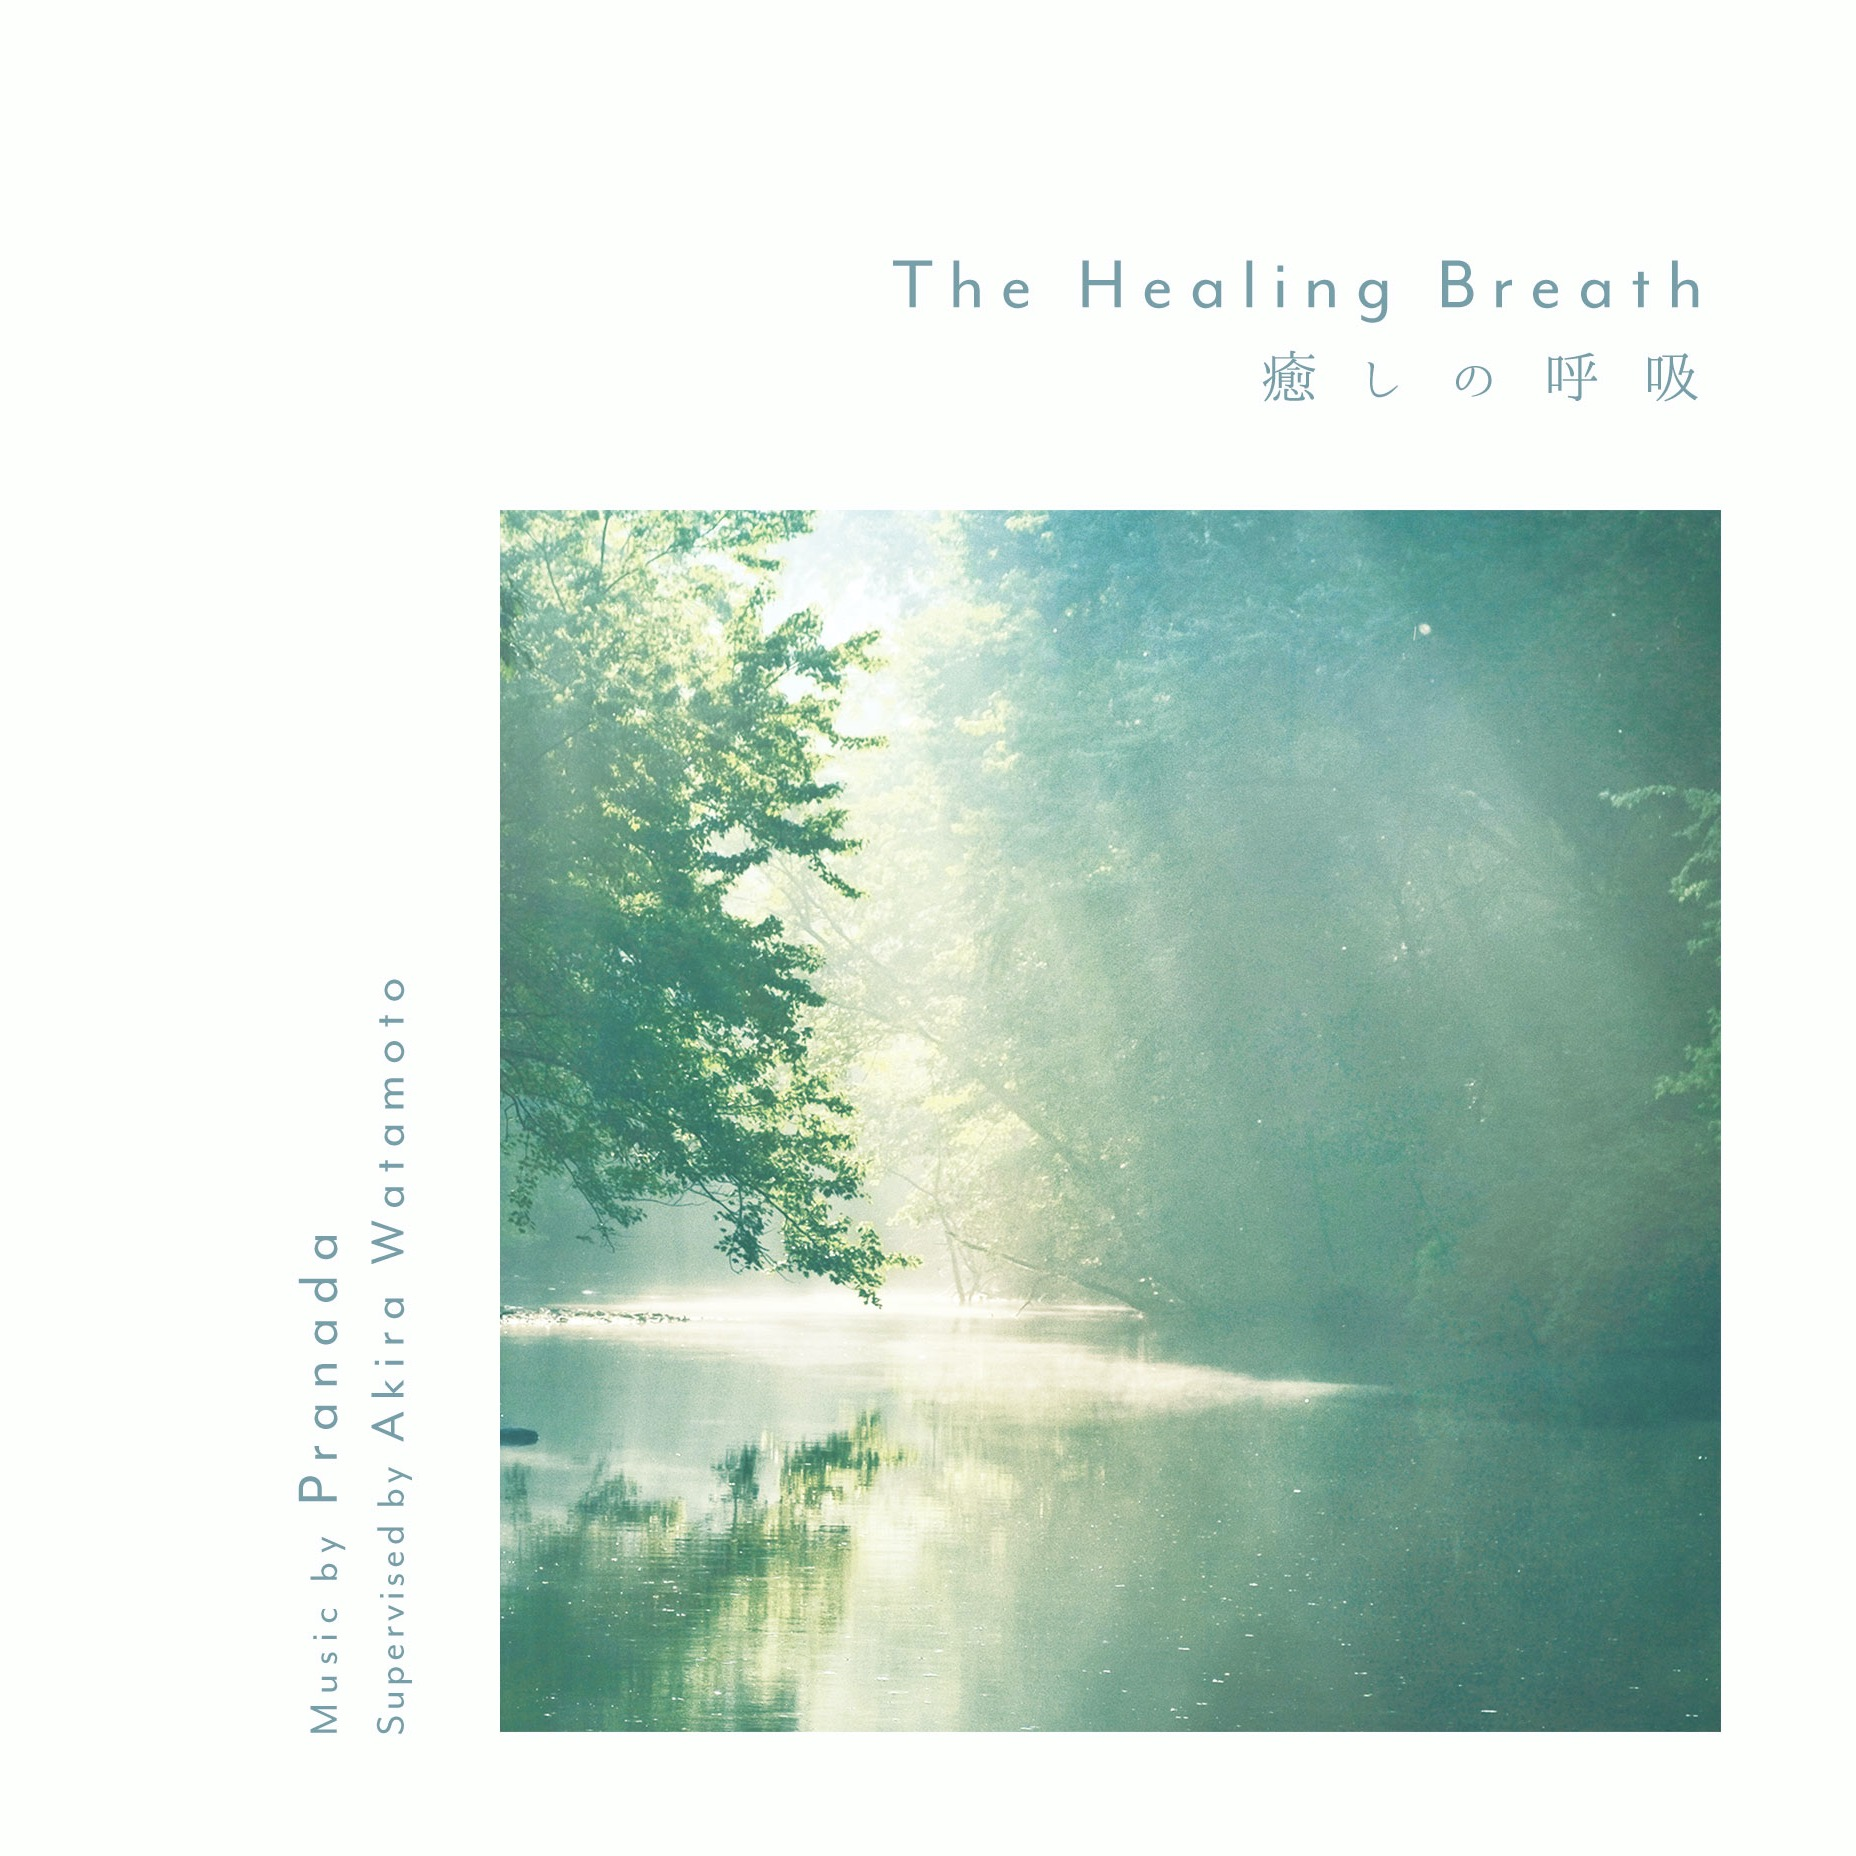 The Healing Breath / Pranada